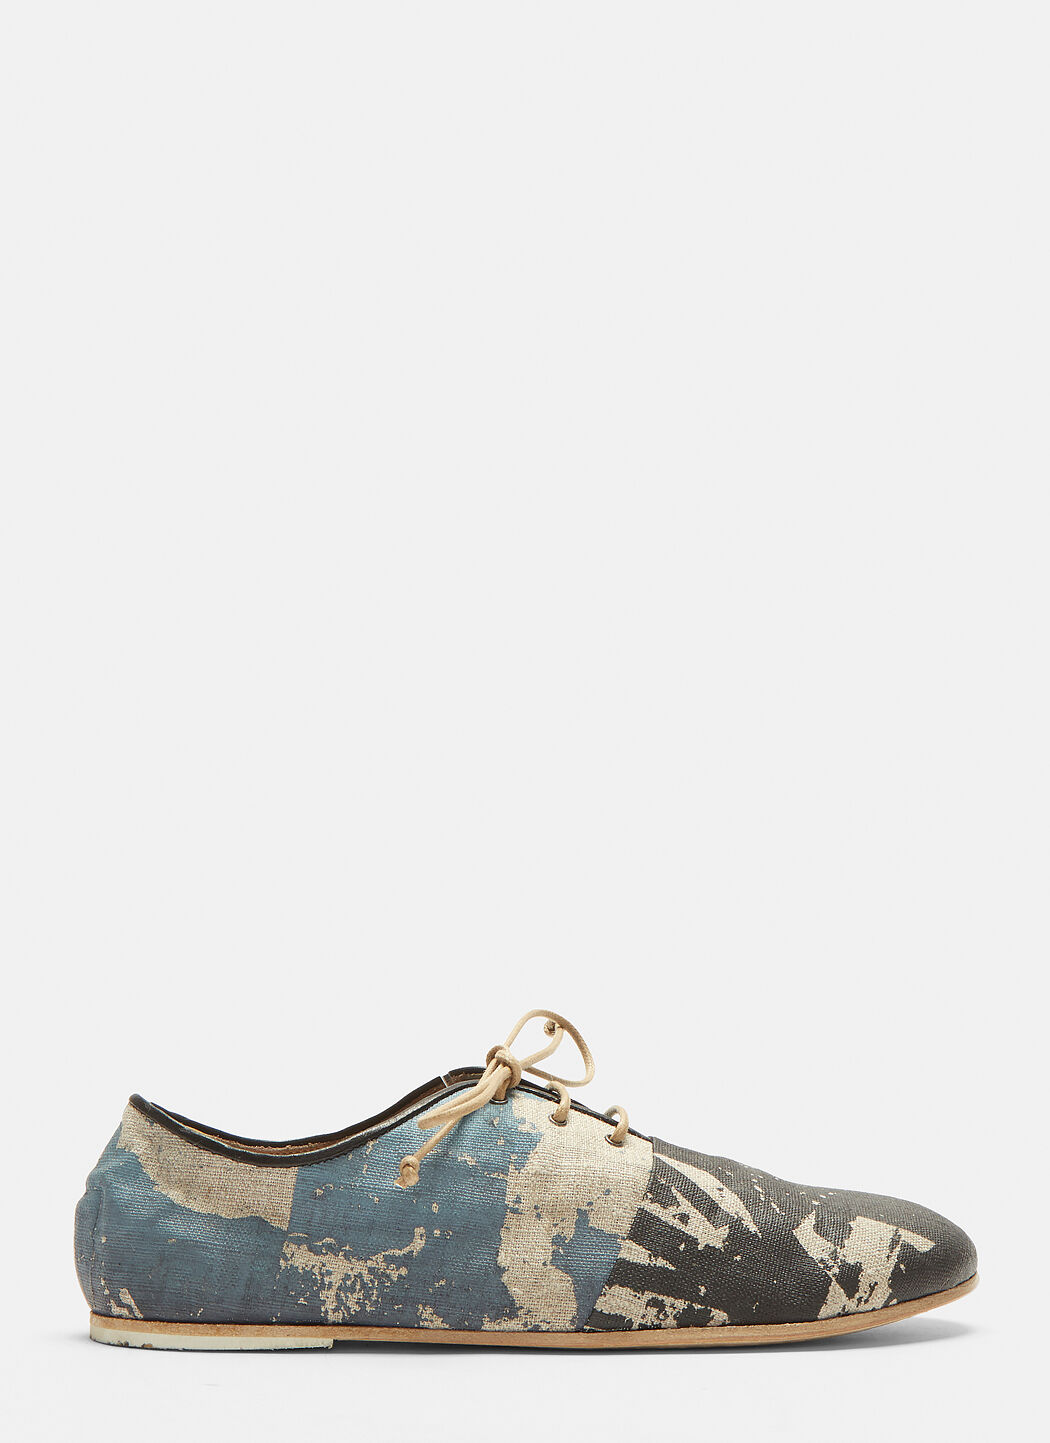 Tessuto Canvas Lace-up Shoes in Blue